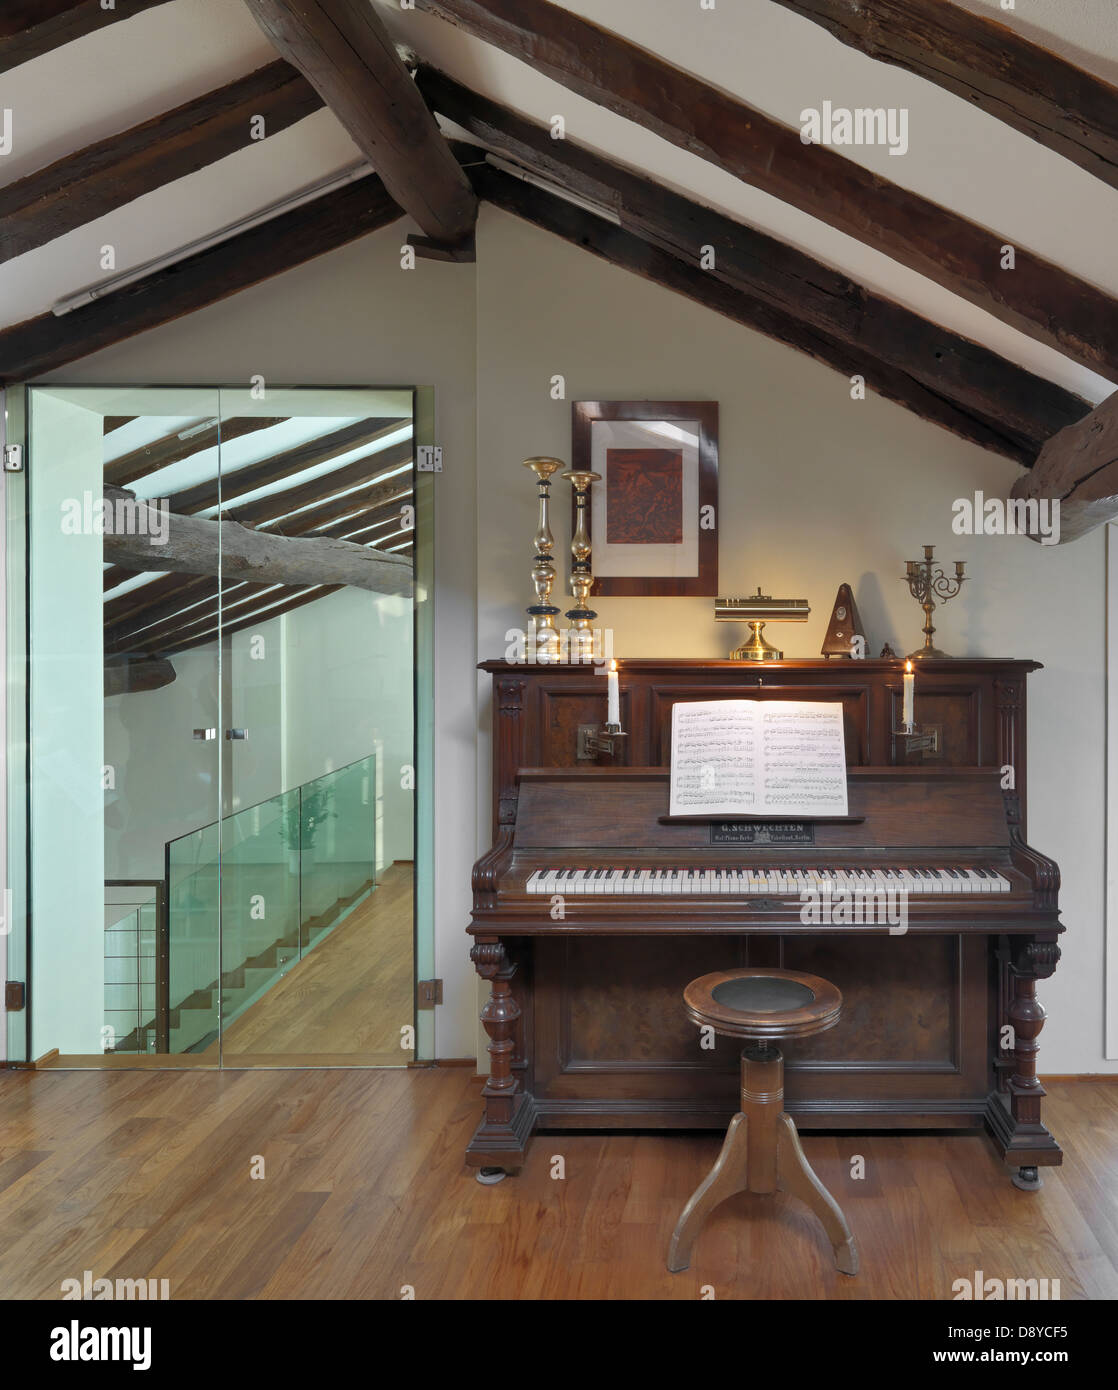 old piano in the attic with wood floor and sliding glass door & old piano in the attic with wood floor and sliding glass door ...